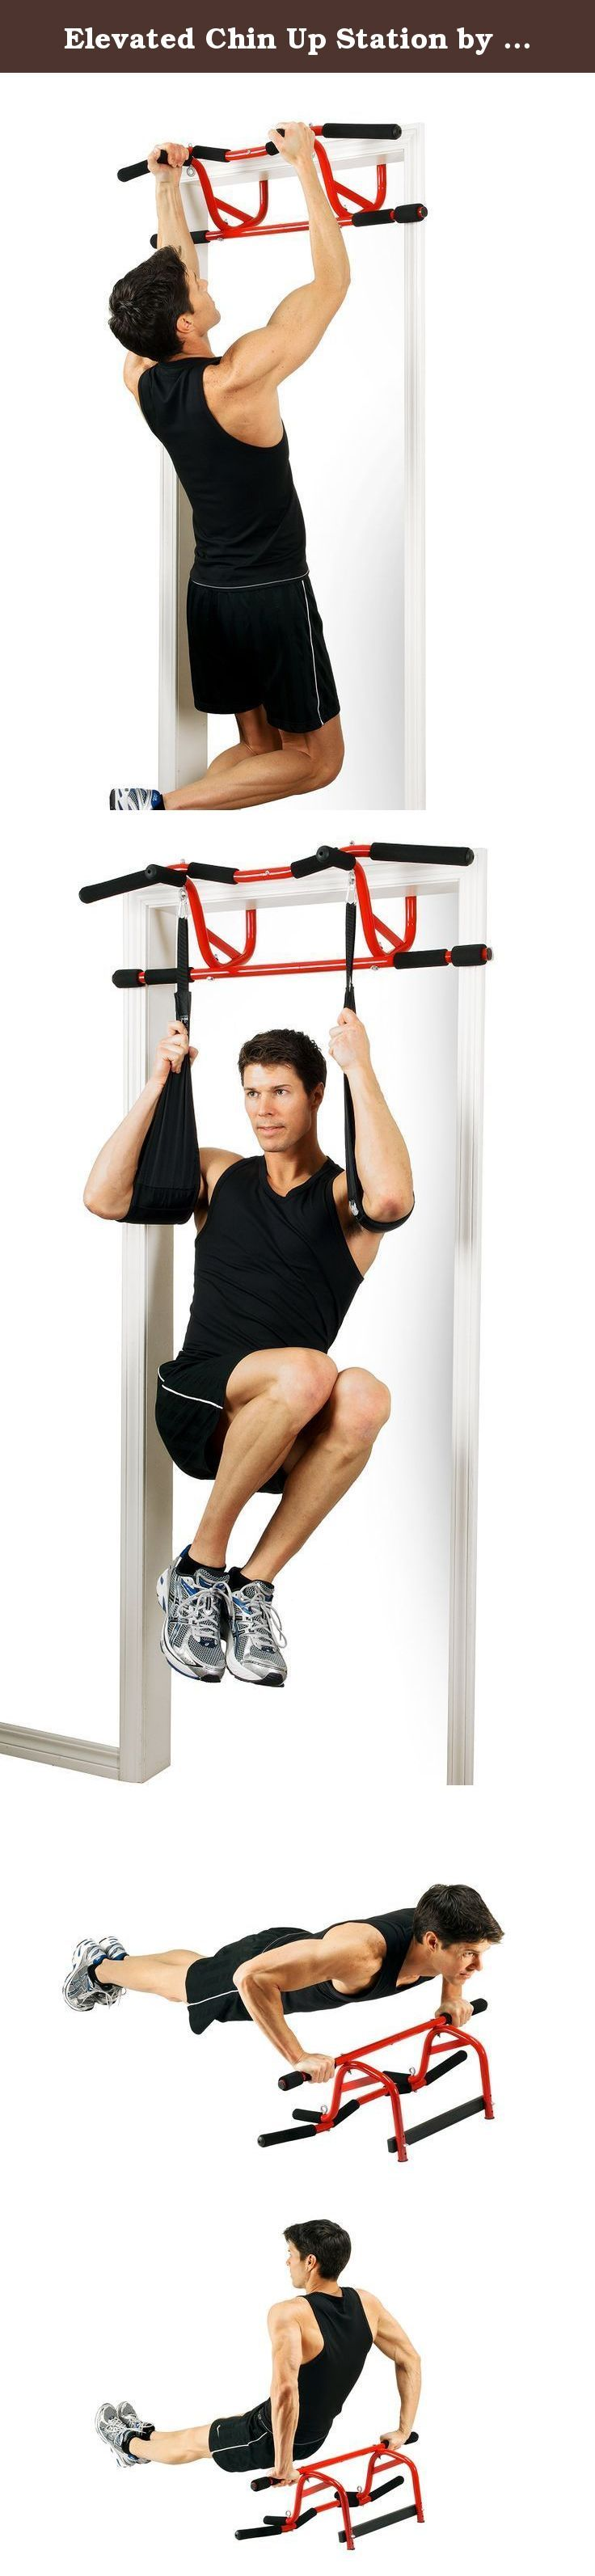 Elevated Chin Up Station by GoFit. THE ELEVATED CHIN UP STATION TAKES CHIN UPS TO A NEW LEVEL — literally. Our multi-use Chin Up Station incorporates a new patent-pending design which elevates you above the door frame giving more clearance and a full range of motion for a better workout. The Elevated Chin Up Station instantly and easily mounts in a standard doorway with no screws, using leverage and gravity. It may be removed quickly and easily at any time with no tools. It can be used…